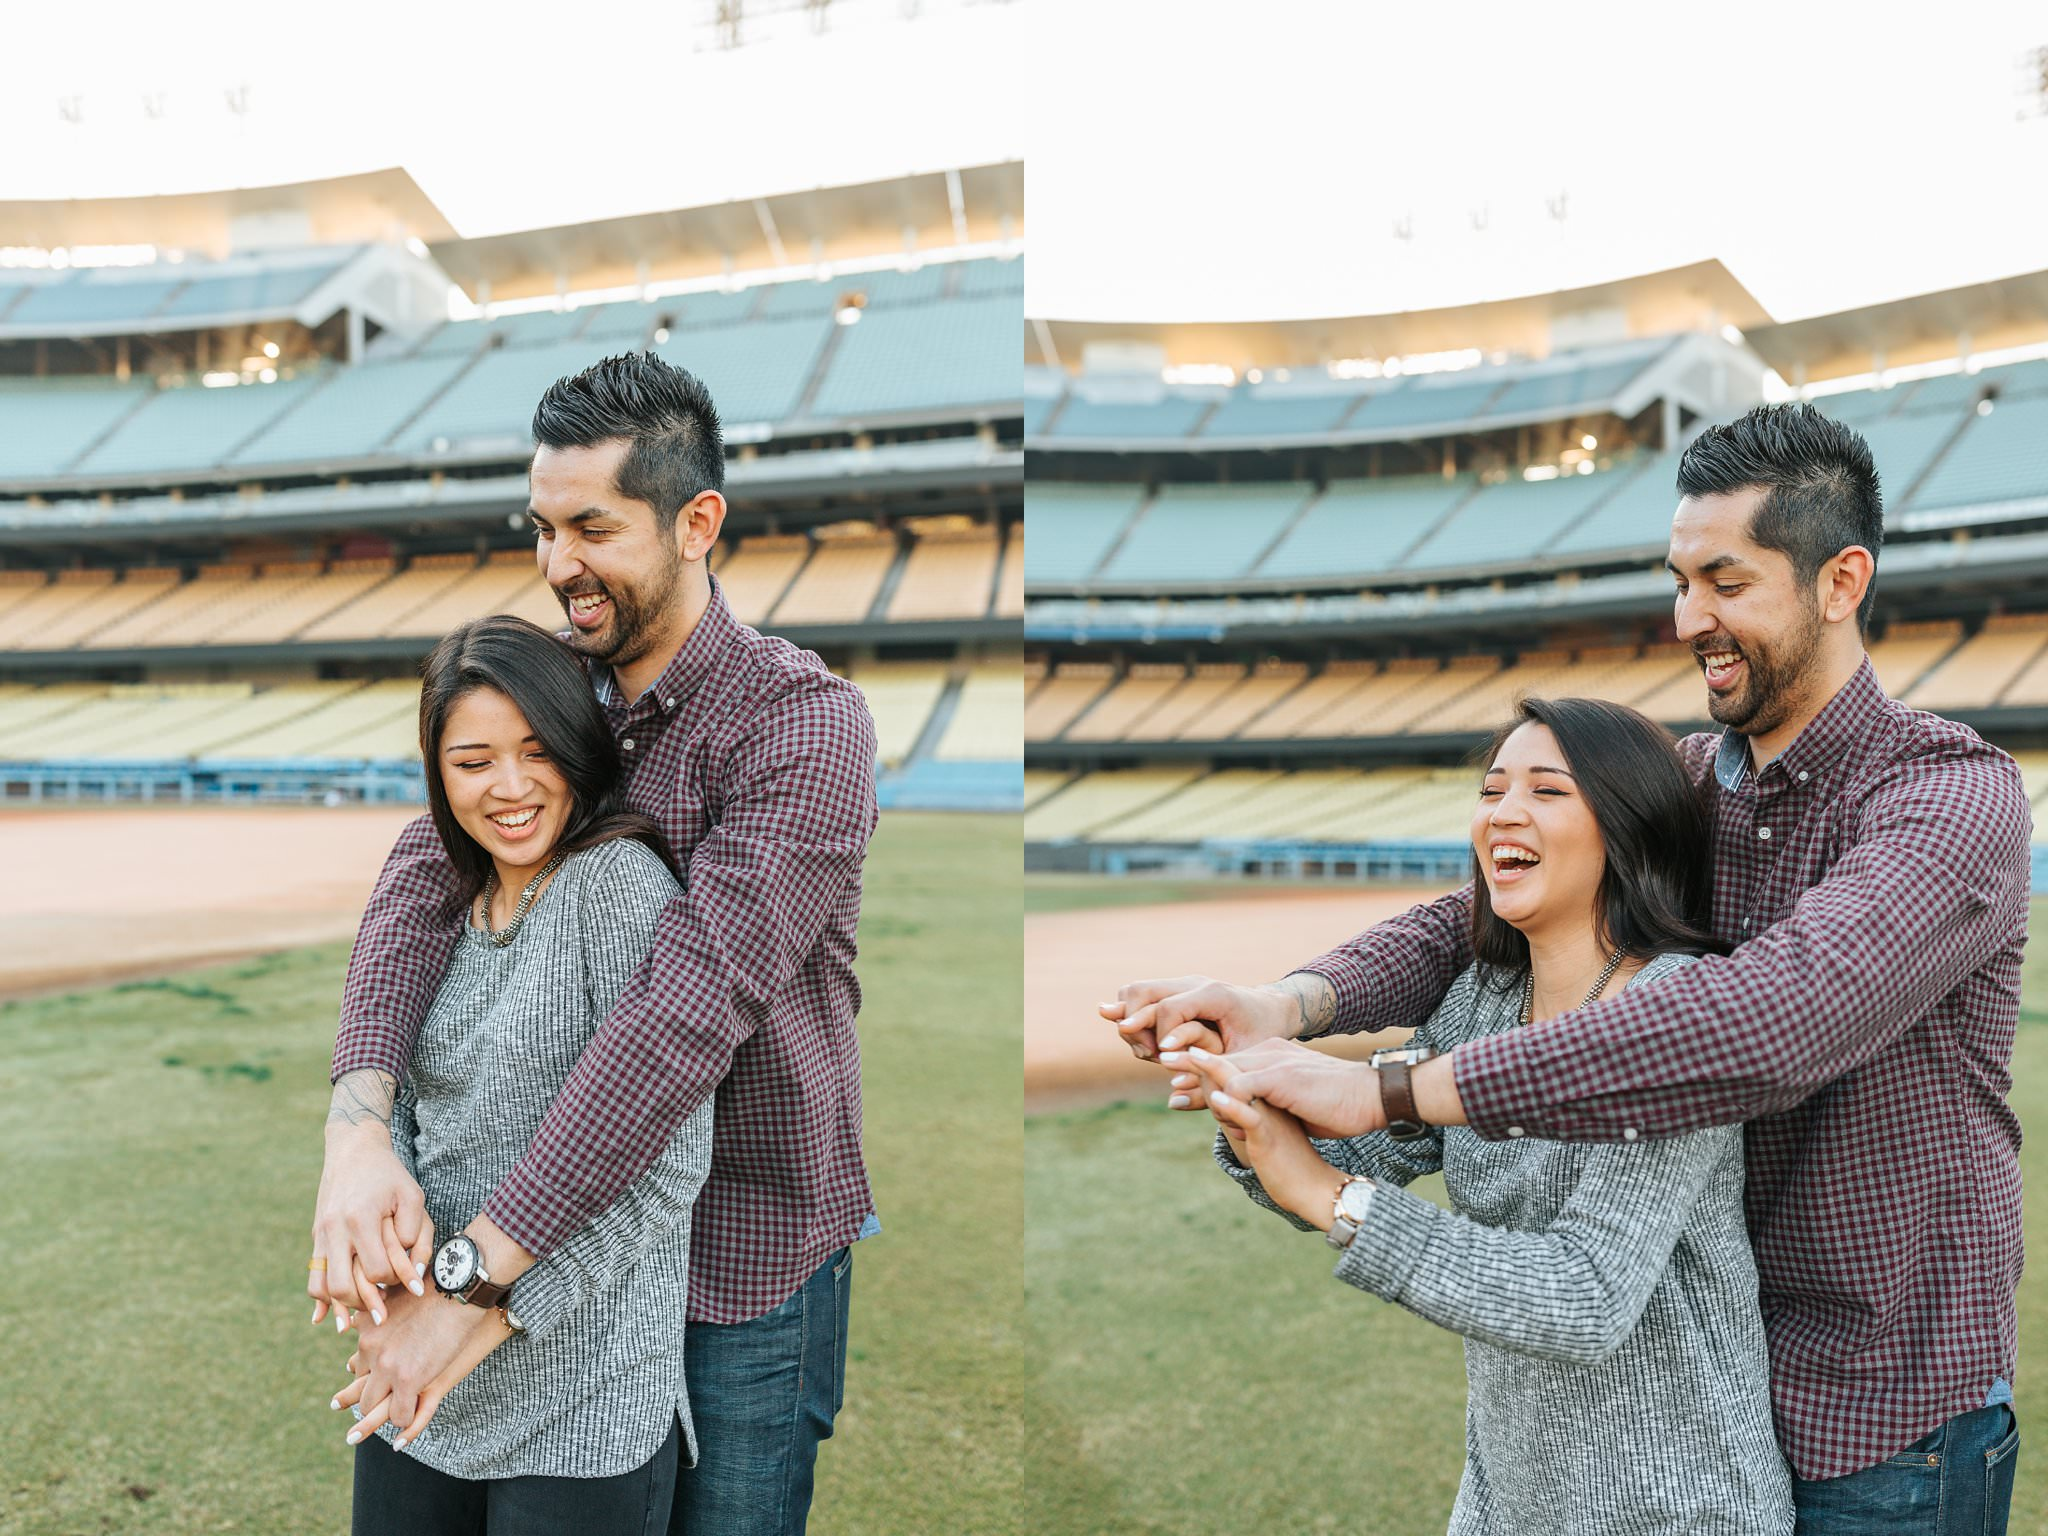 Baseball Engagement Session at Dodger Stadium in Los Angeles, CA - http://brittneyhannonphotography.com